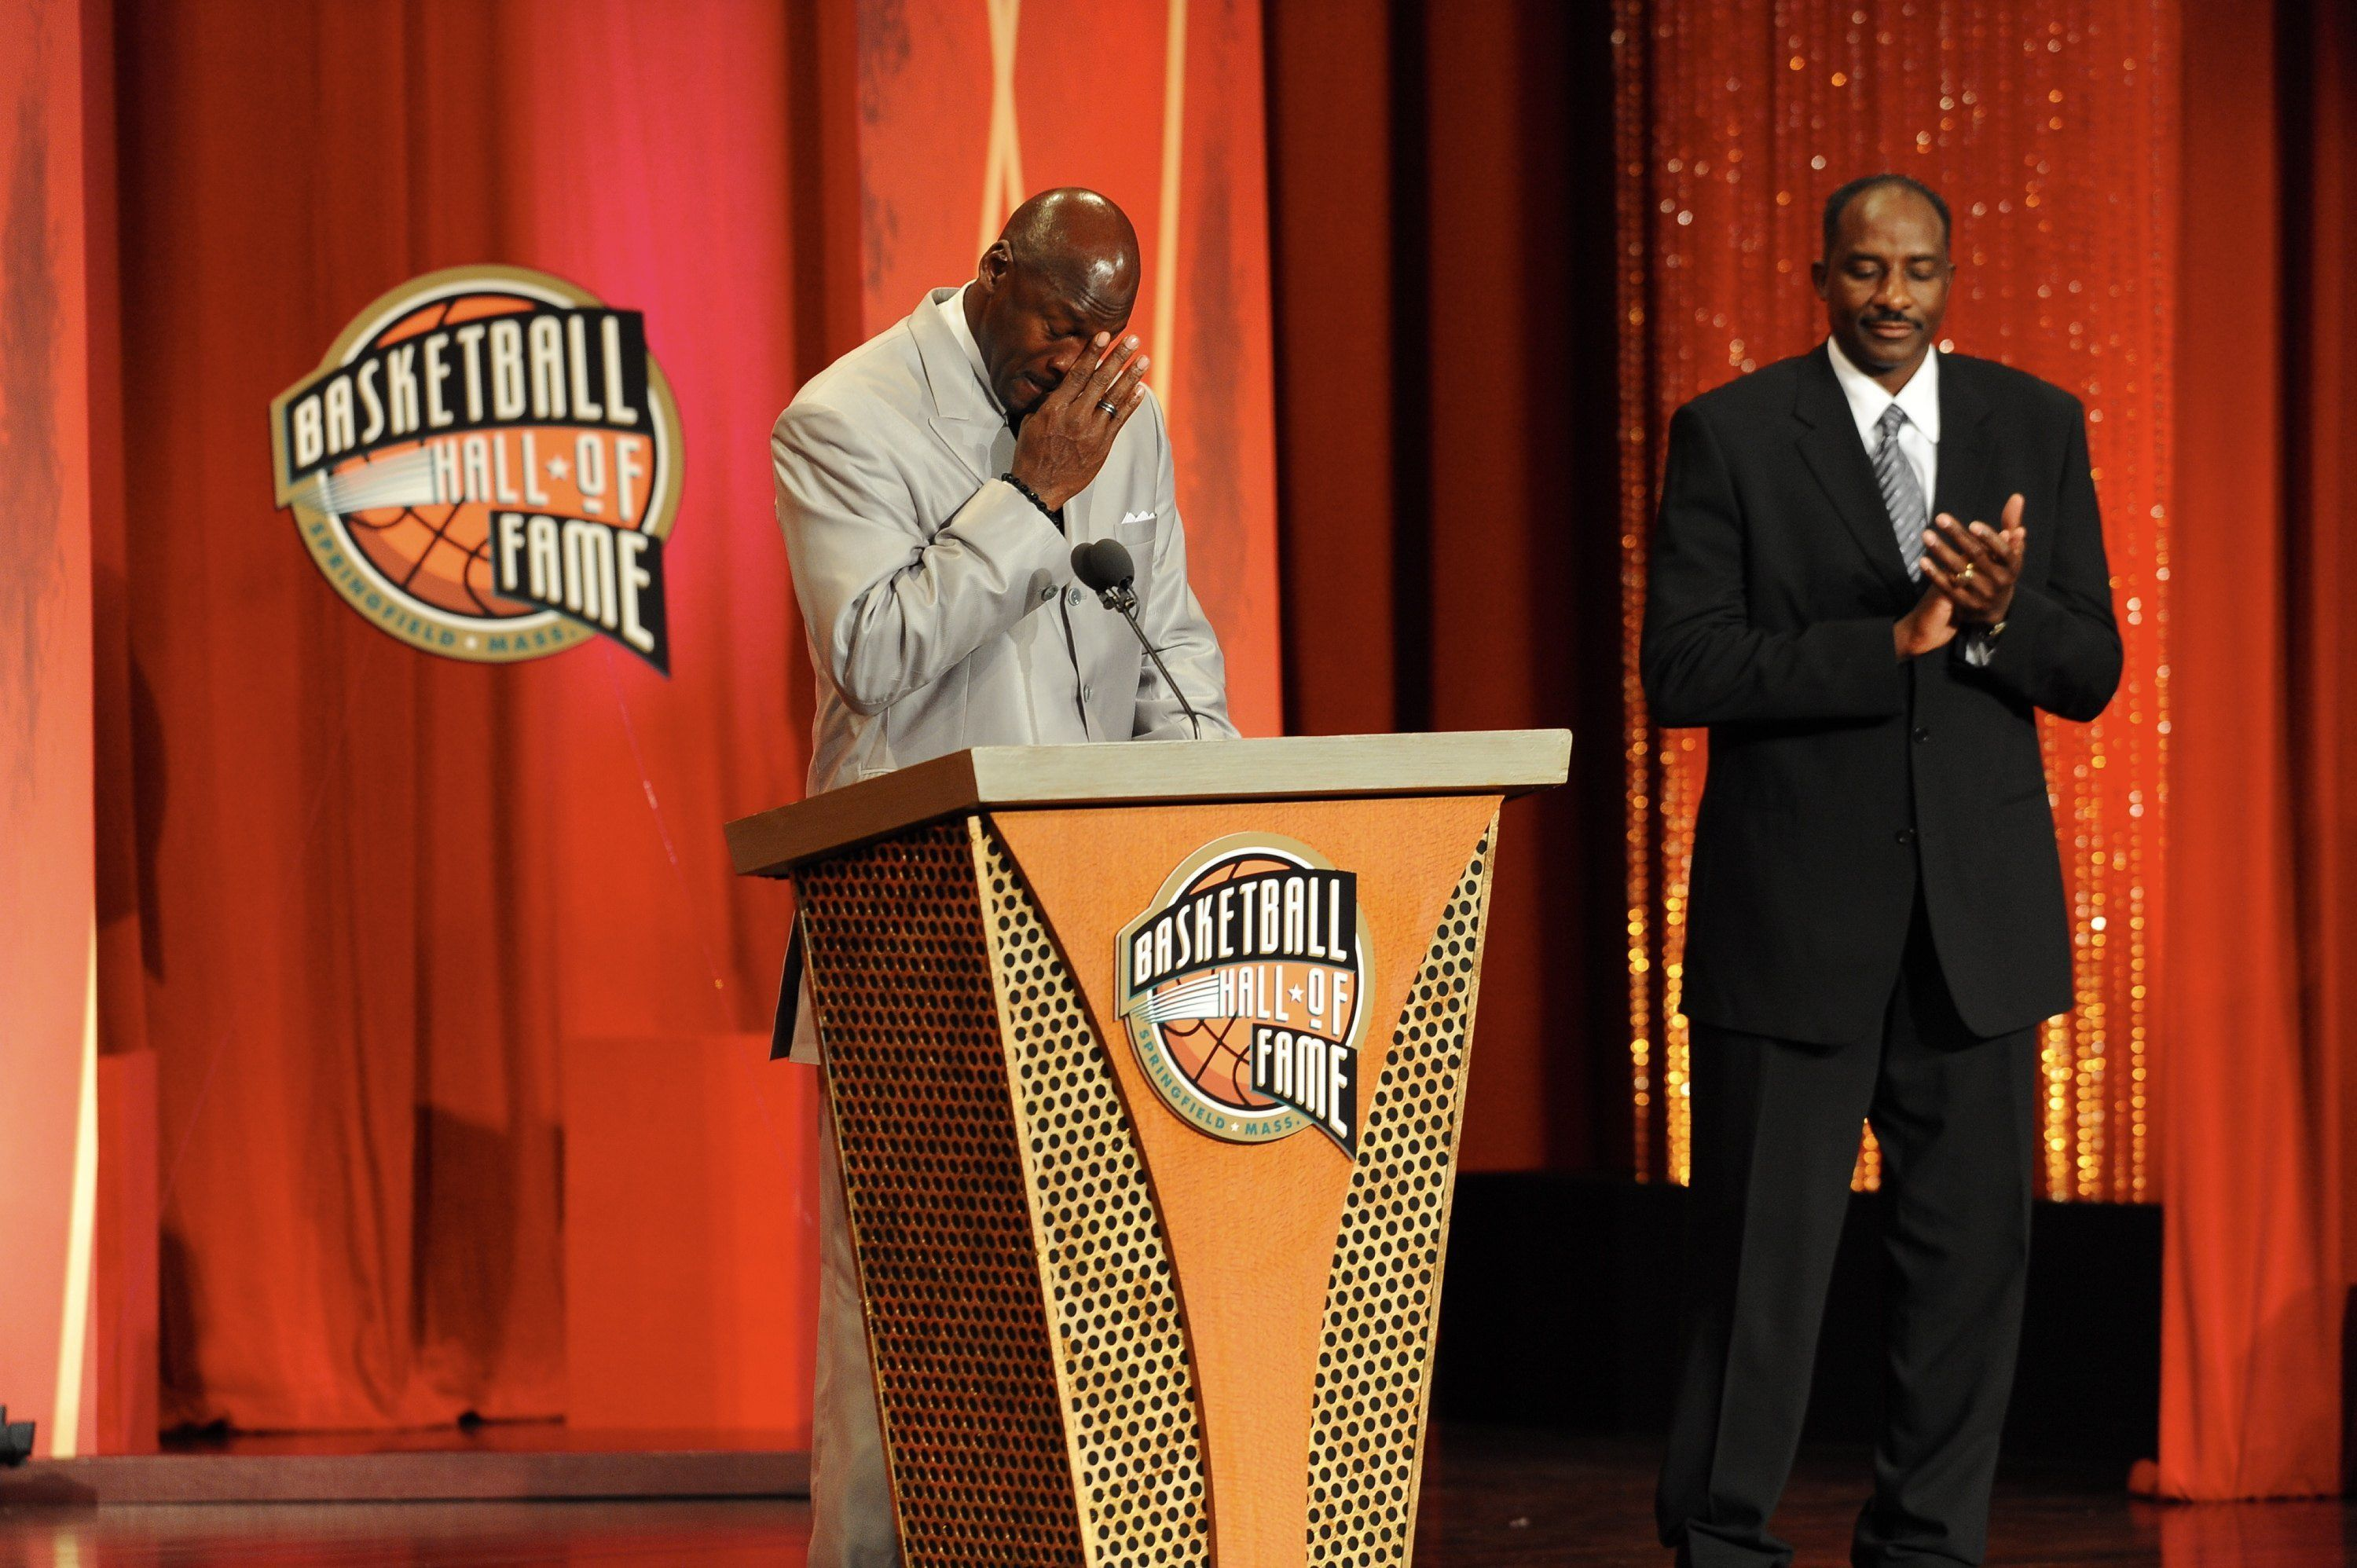 SPRINGFIELD, MA - SEPTEMBER 11: Michael Jordan speaks during the Basketball Hall of Fame Class of 2009 Induction Ceremony at the Symphony Hall on September 11, 2009 in Springfield, Massachusetts.  NOTE TO USER: User expressly acknowledges and agrees that, by downloading and/or using this Photograph, user is consenting to the terms and conditions of the Getty Images License Agreement. Mandatory Copyright Notice: Copyright 2009 NBAE (Photo by Andrew D. Bernstein/NBAE via Getty Images)